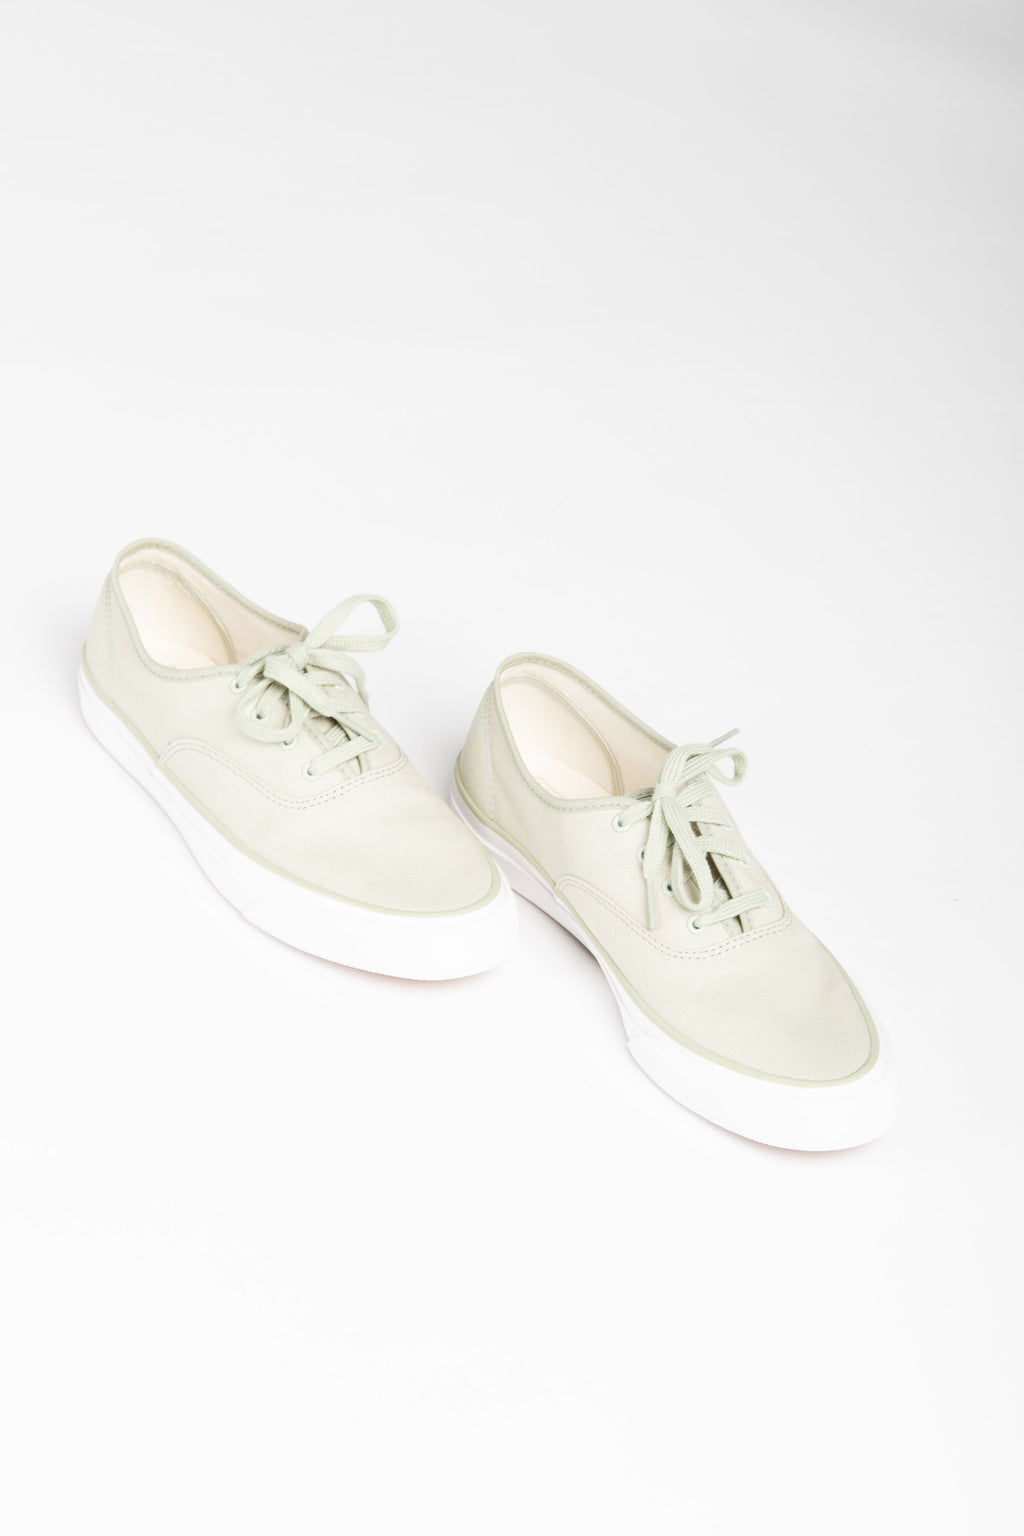 Keds: Surfer Canvas Sneaker in Sage, studio shoot; side view